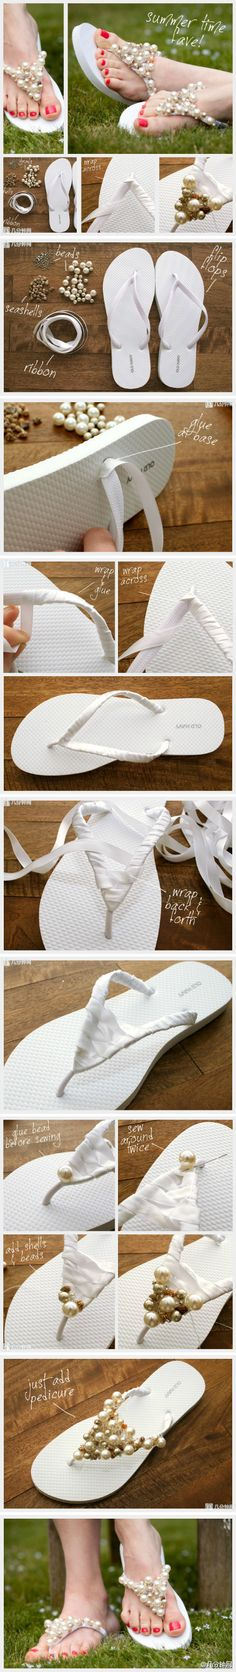 Flip Flop tutorial. not for a wedding but cute